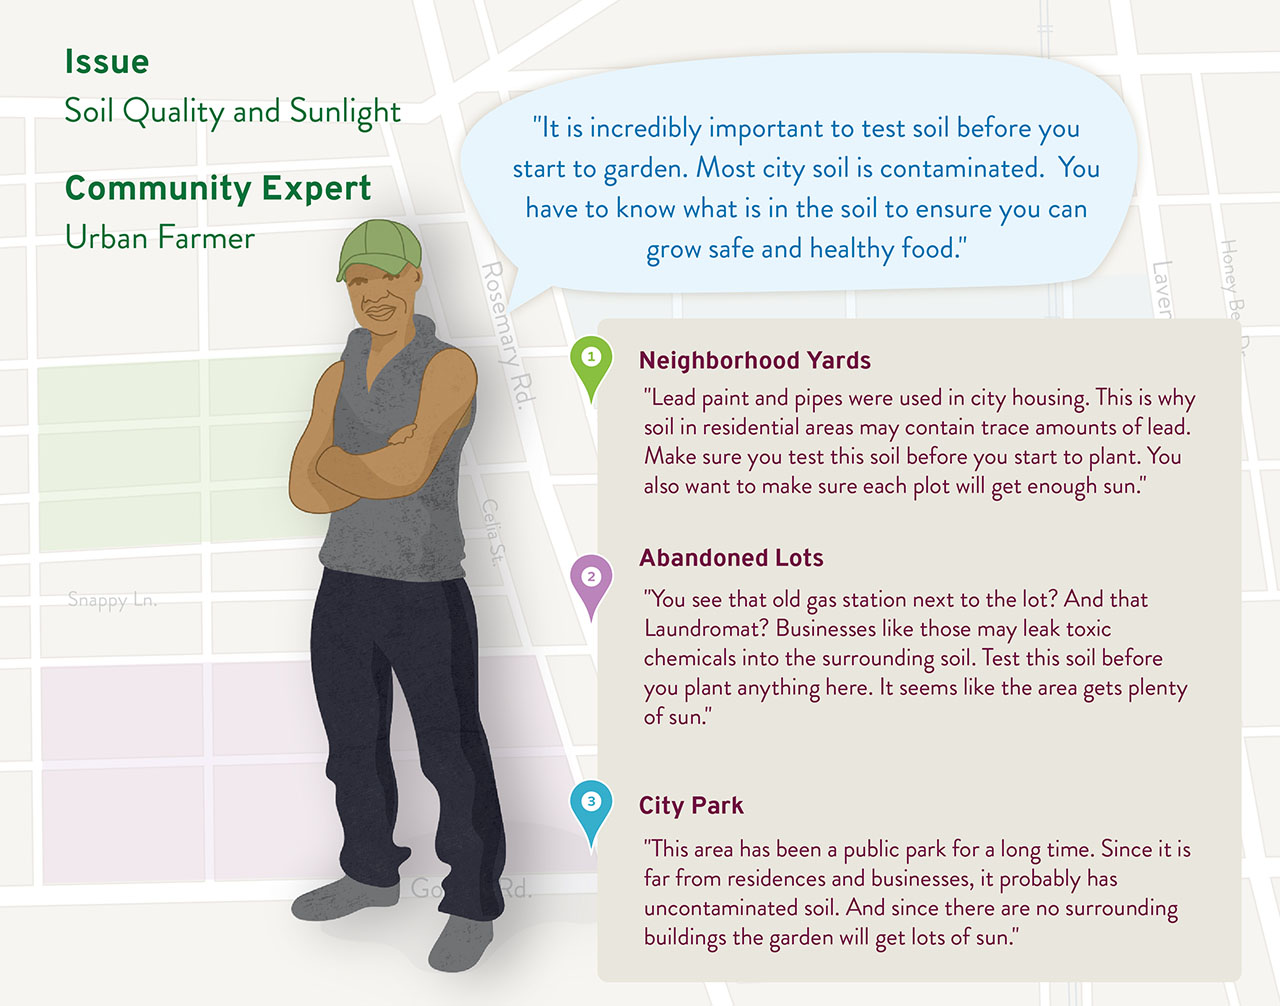 Community Expert Card: Urban Farmer